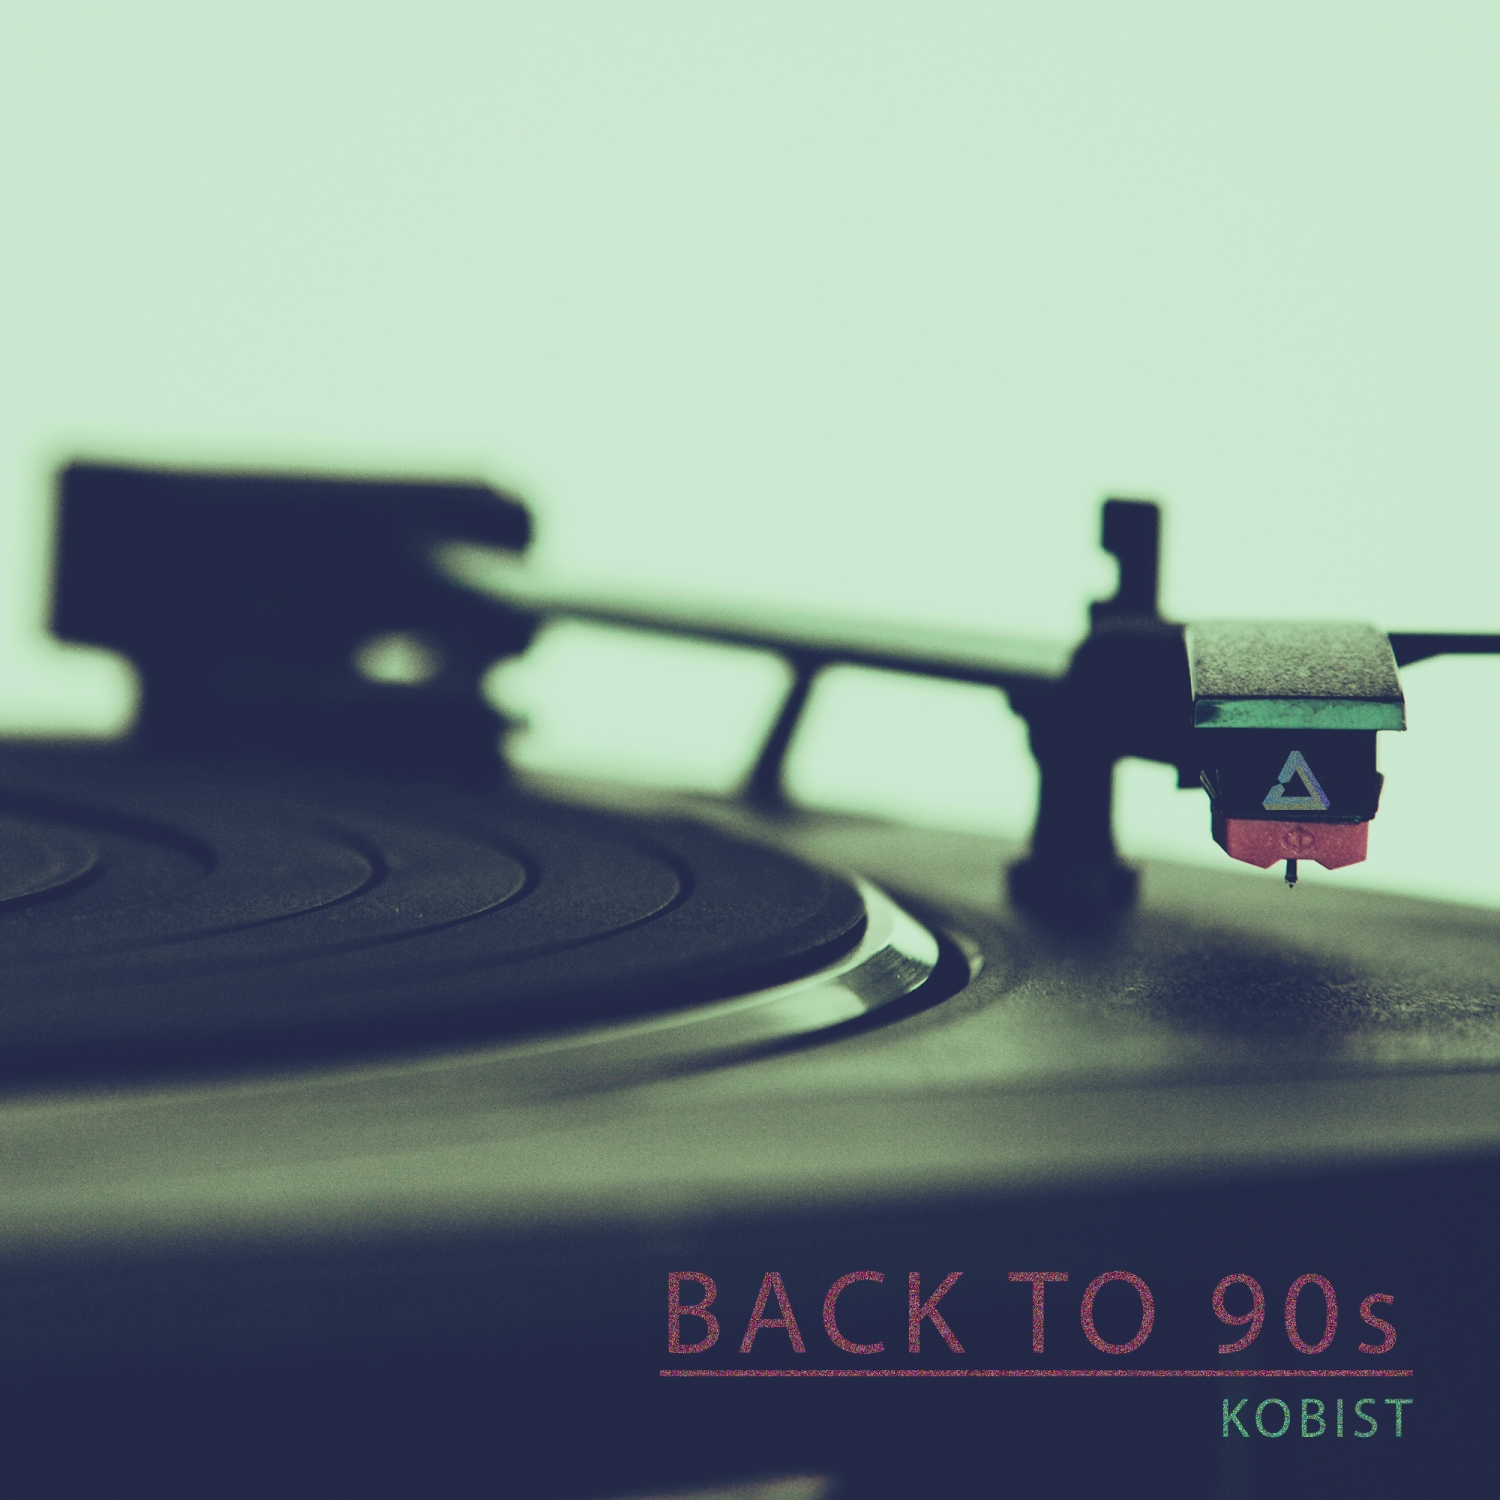 Kobist - Back To 90s (Original Mix)